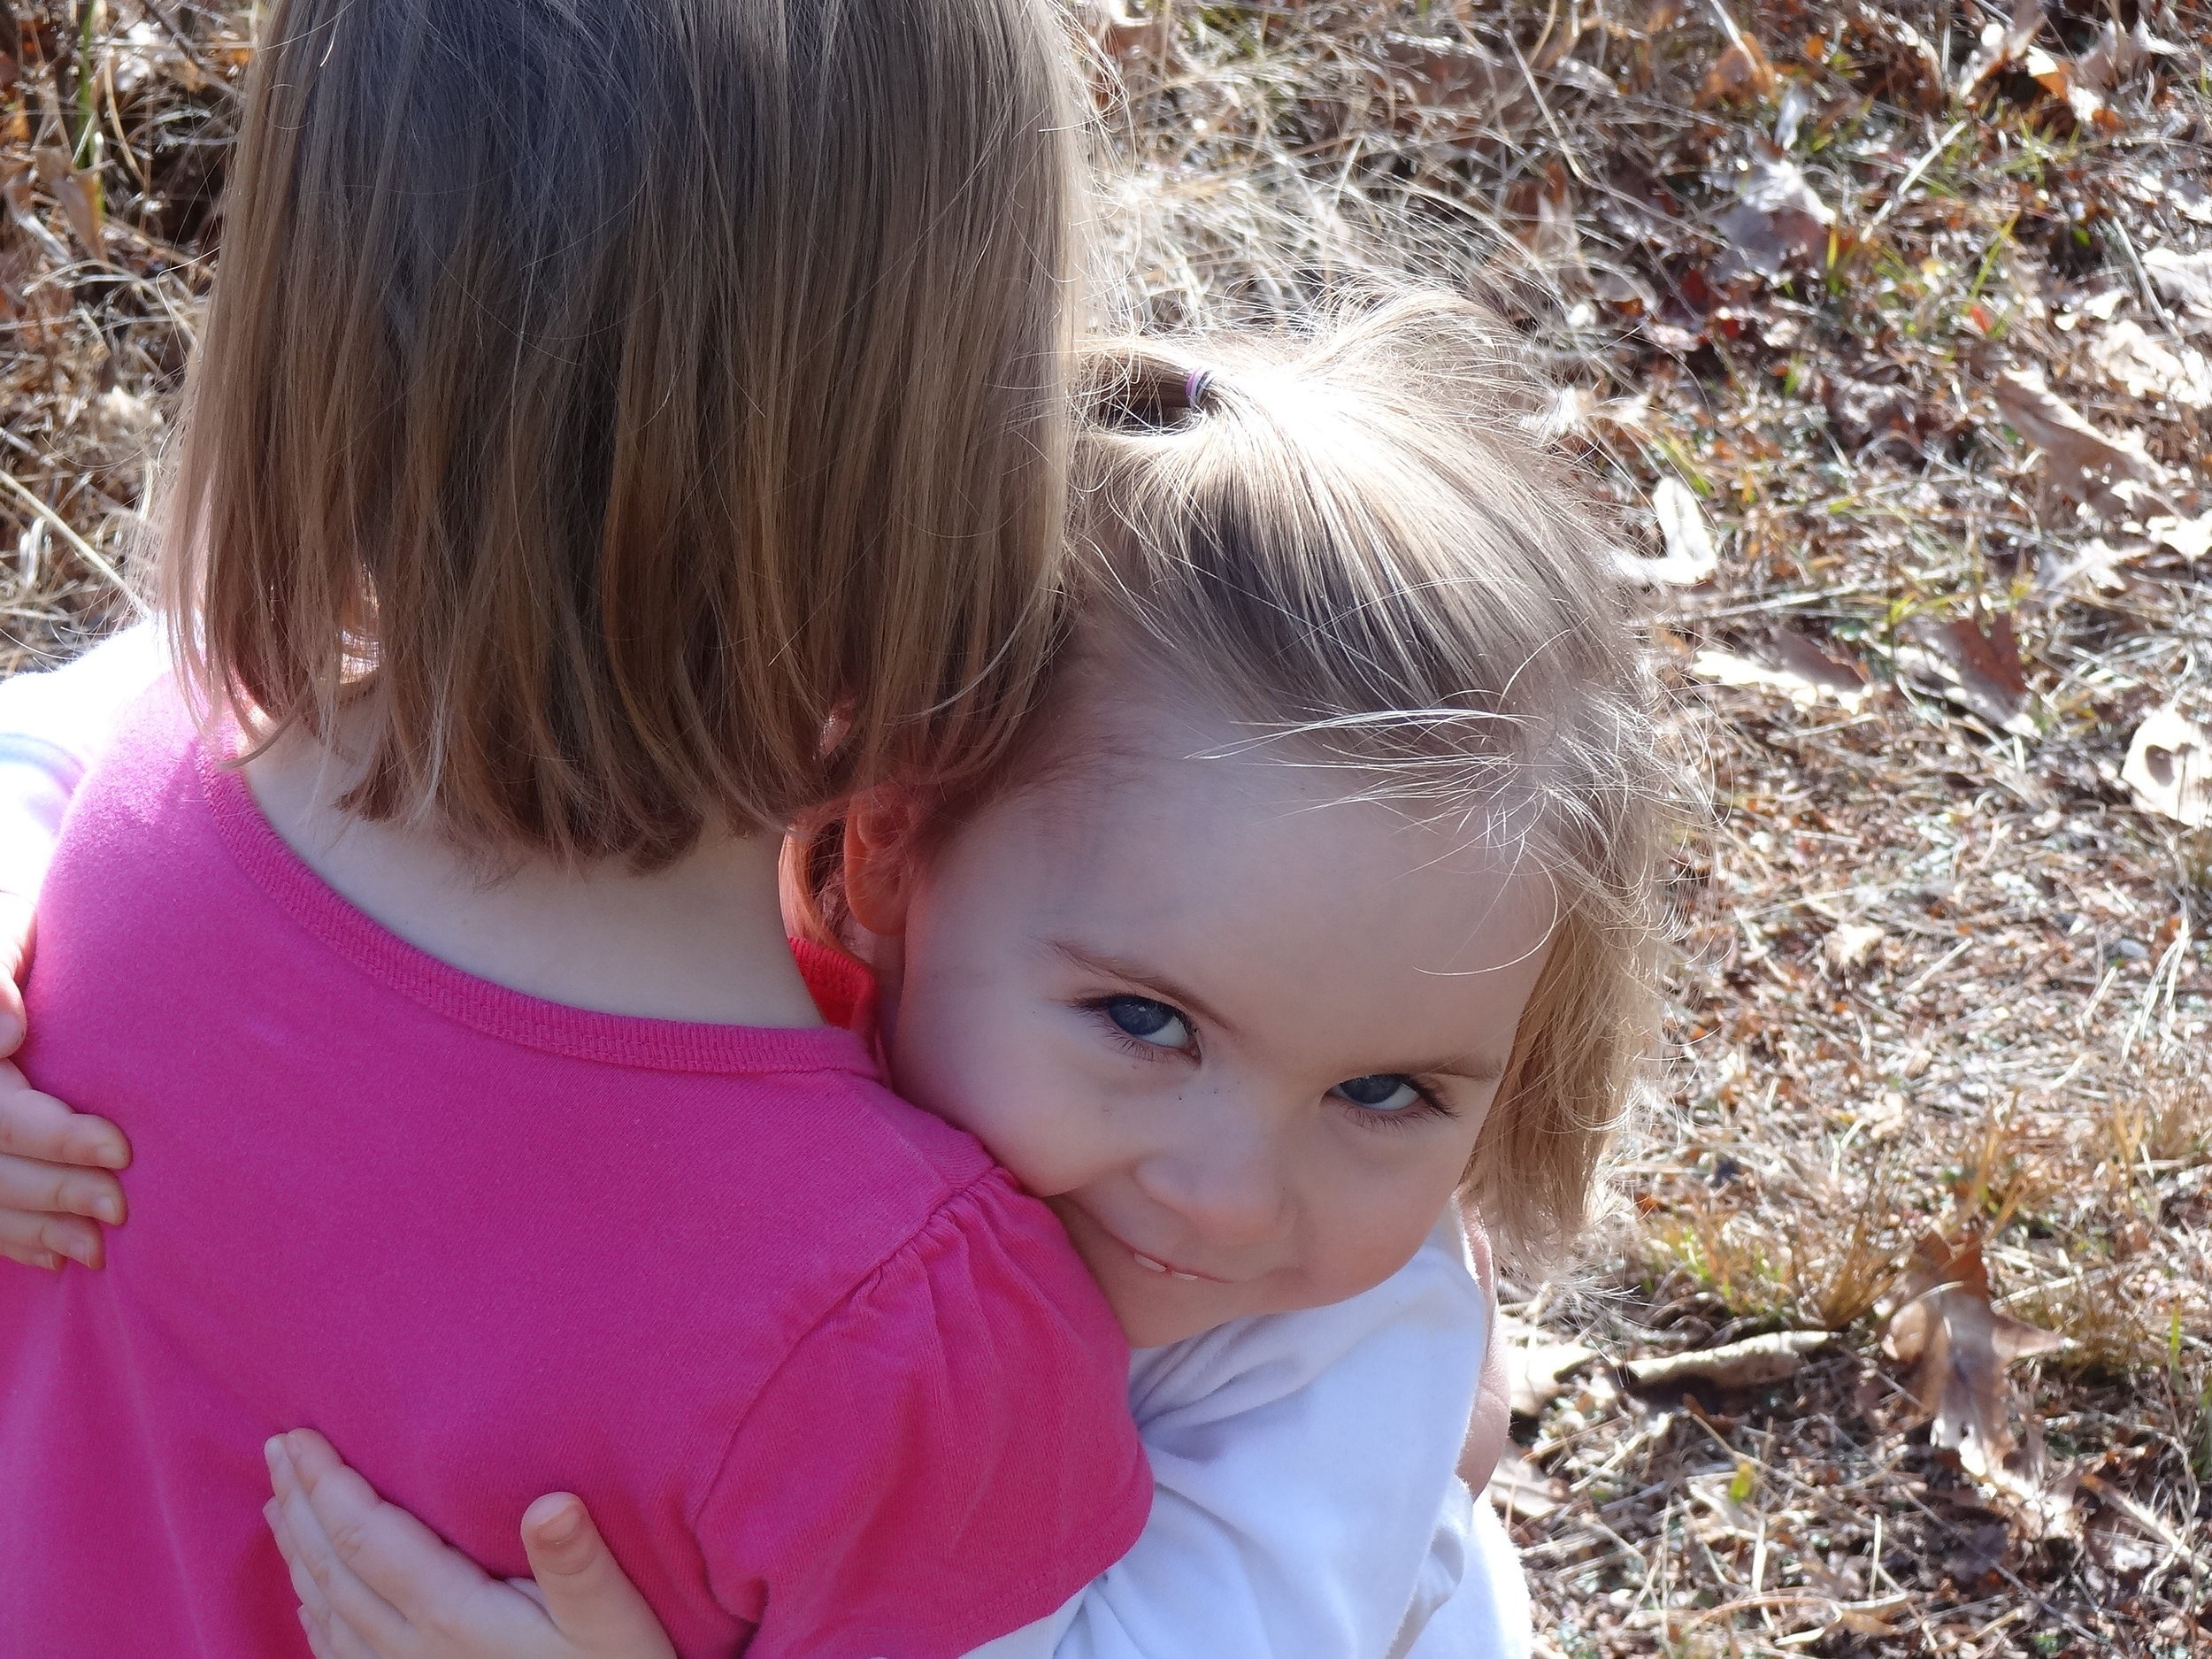 Sweet hugs between children.